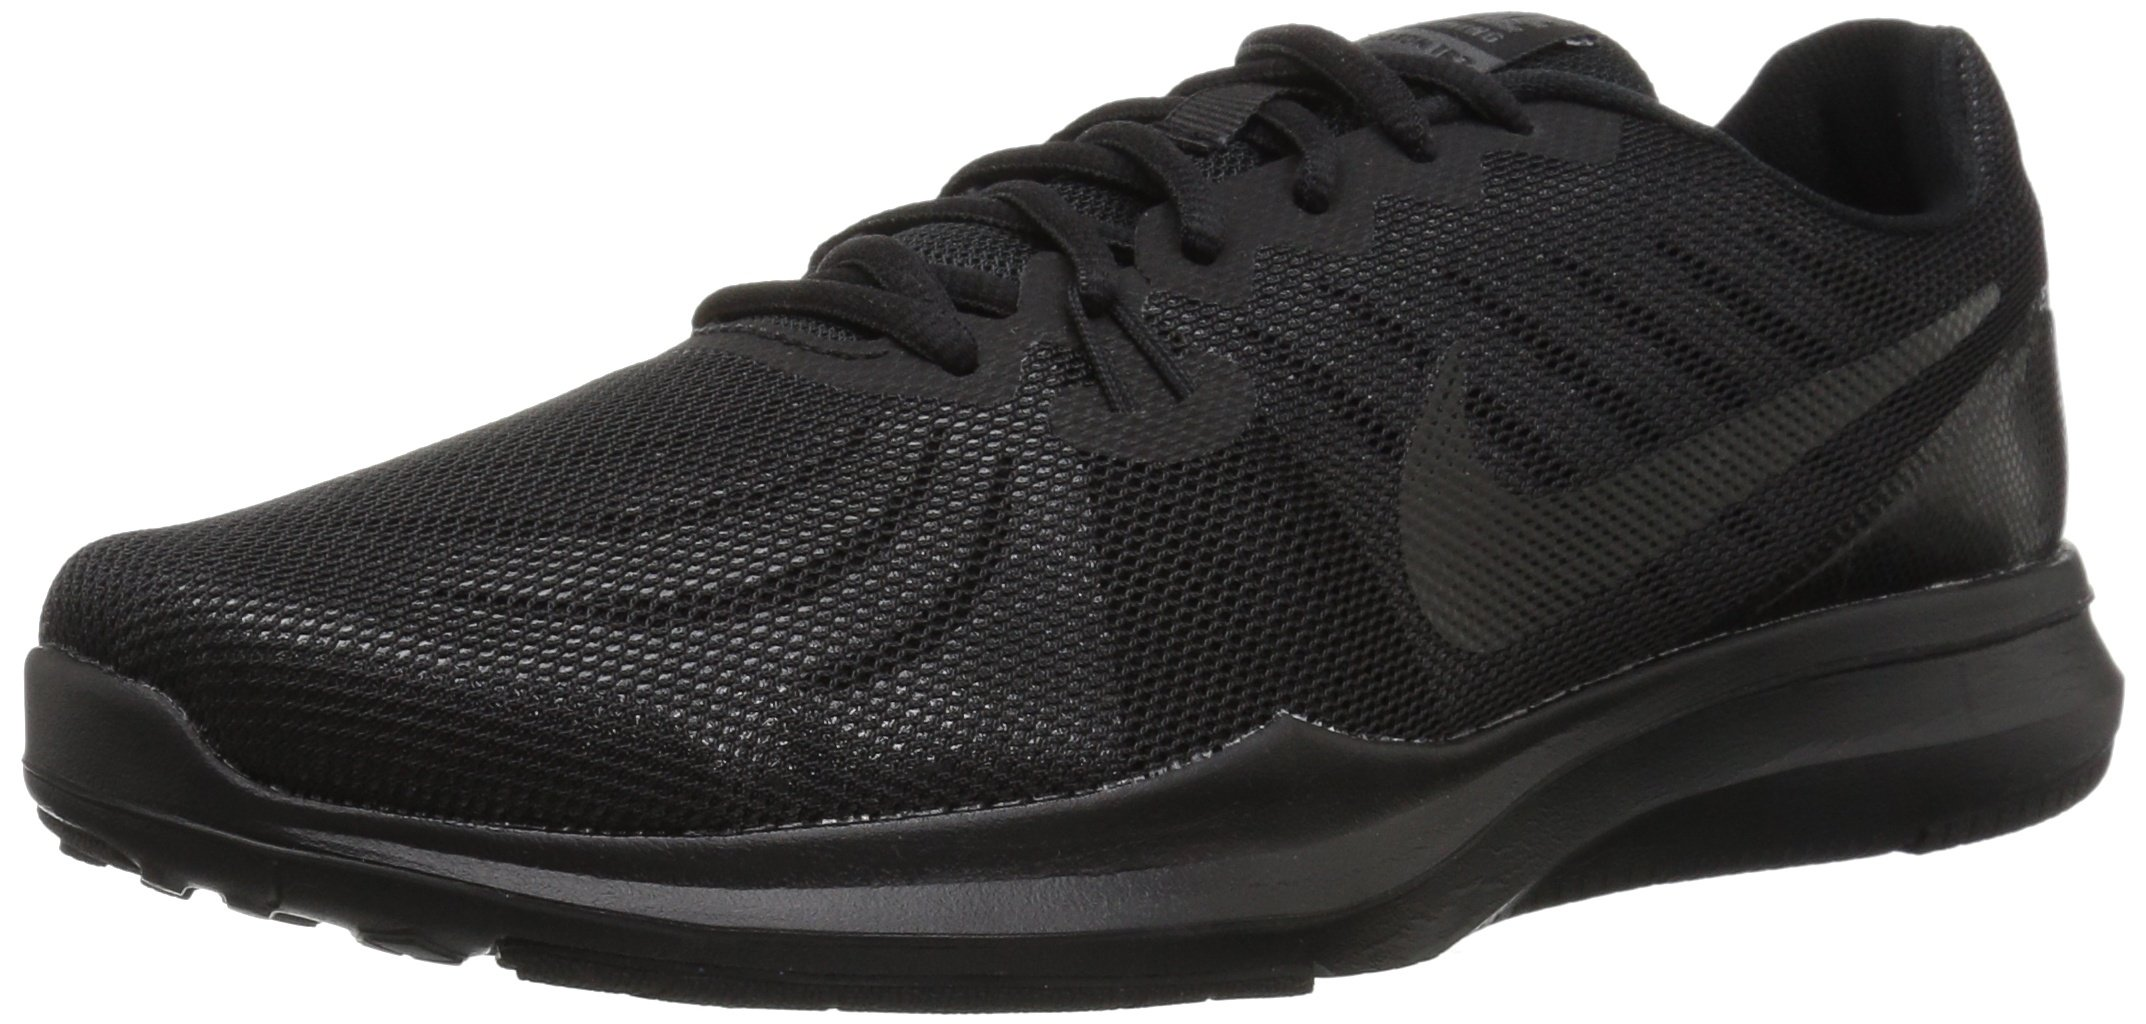 Nike Women's in-Season Trainer 7 Cross Anthracite-Black, 10.5 Regular US by Nike